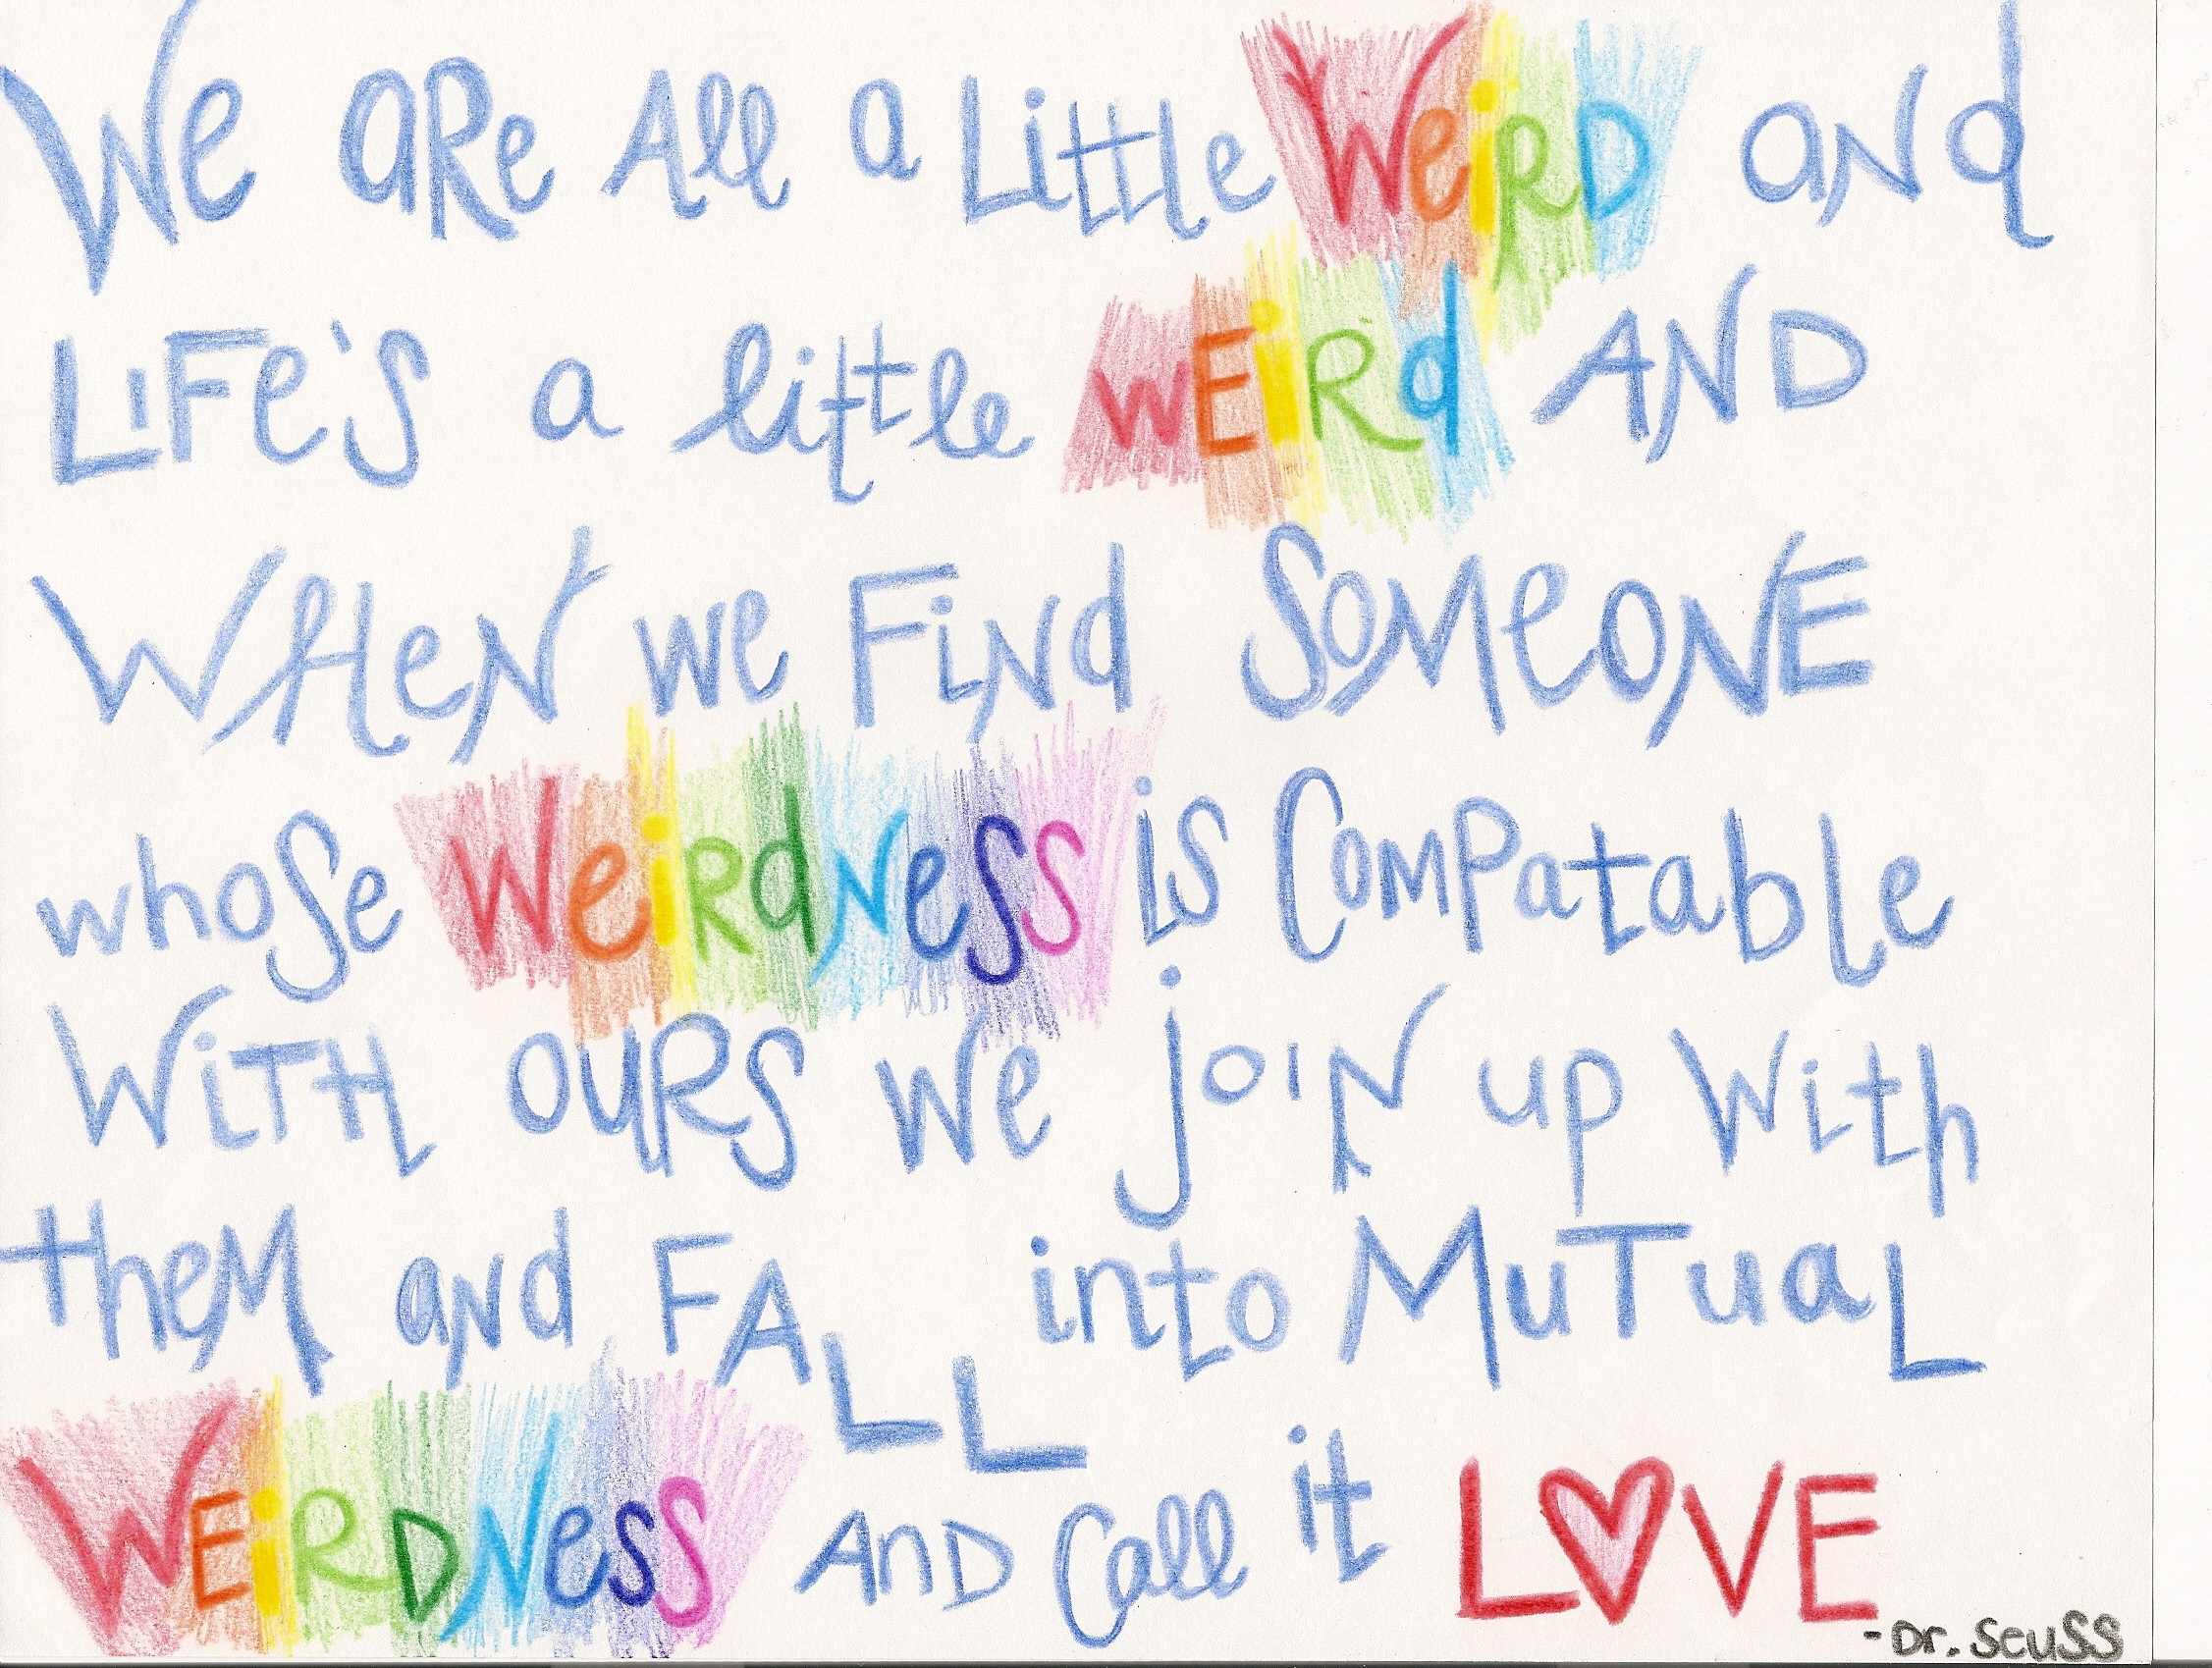 Dr Seuss Love Quotes Dr Seuss Love Quote Weird  Page 3  The Best Love Quotes